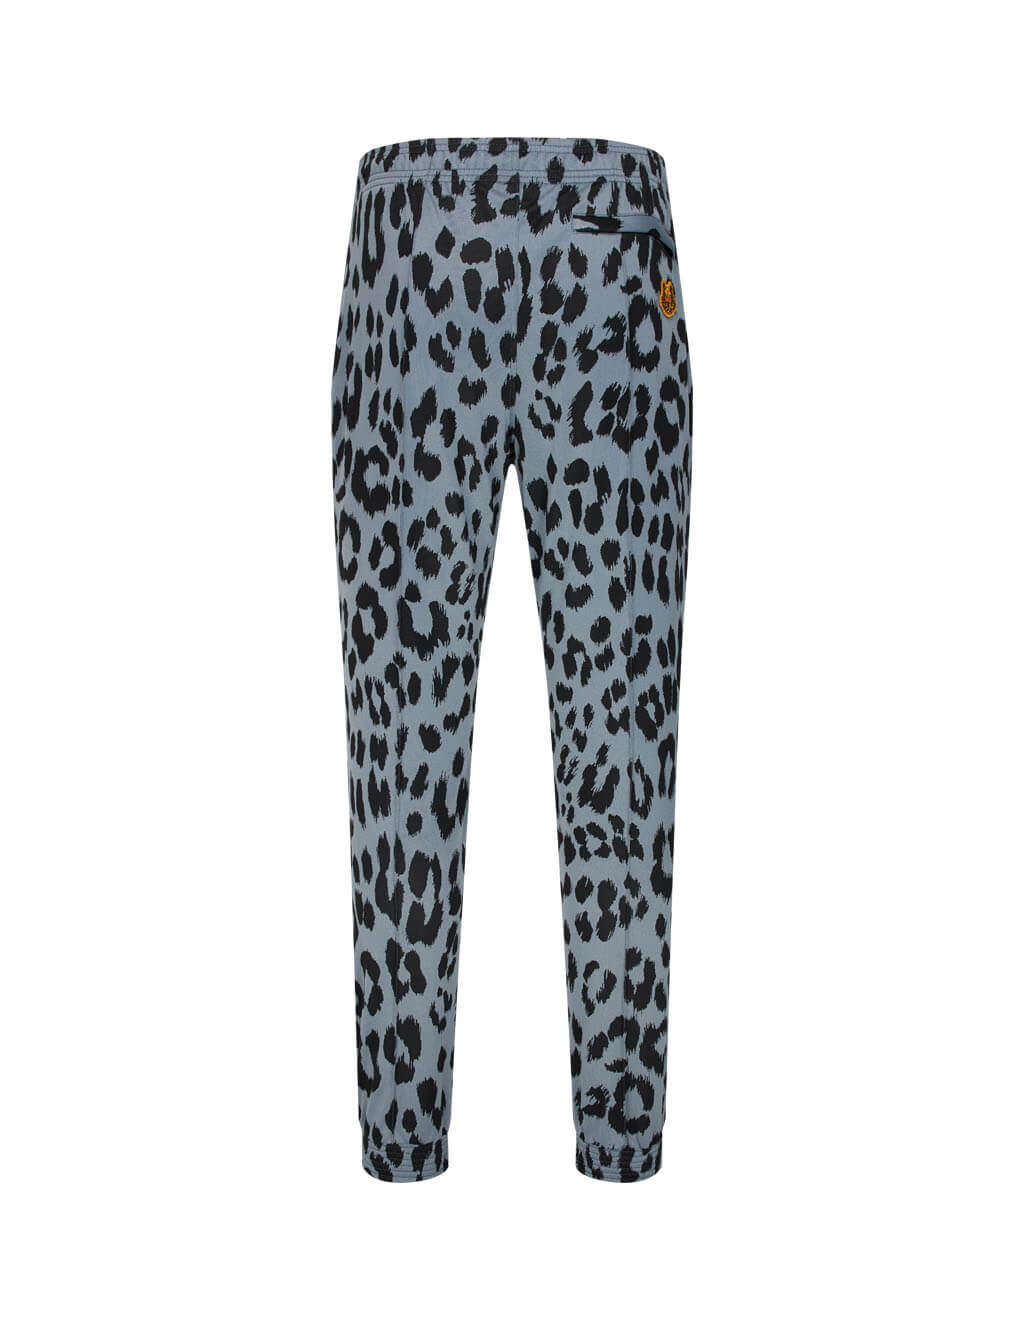 Men's KENZO Tiger Crest Sweatpants with Leopard Print in Glacier Blue - FA65PA7134CA.62